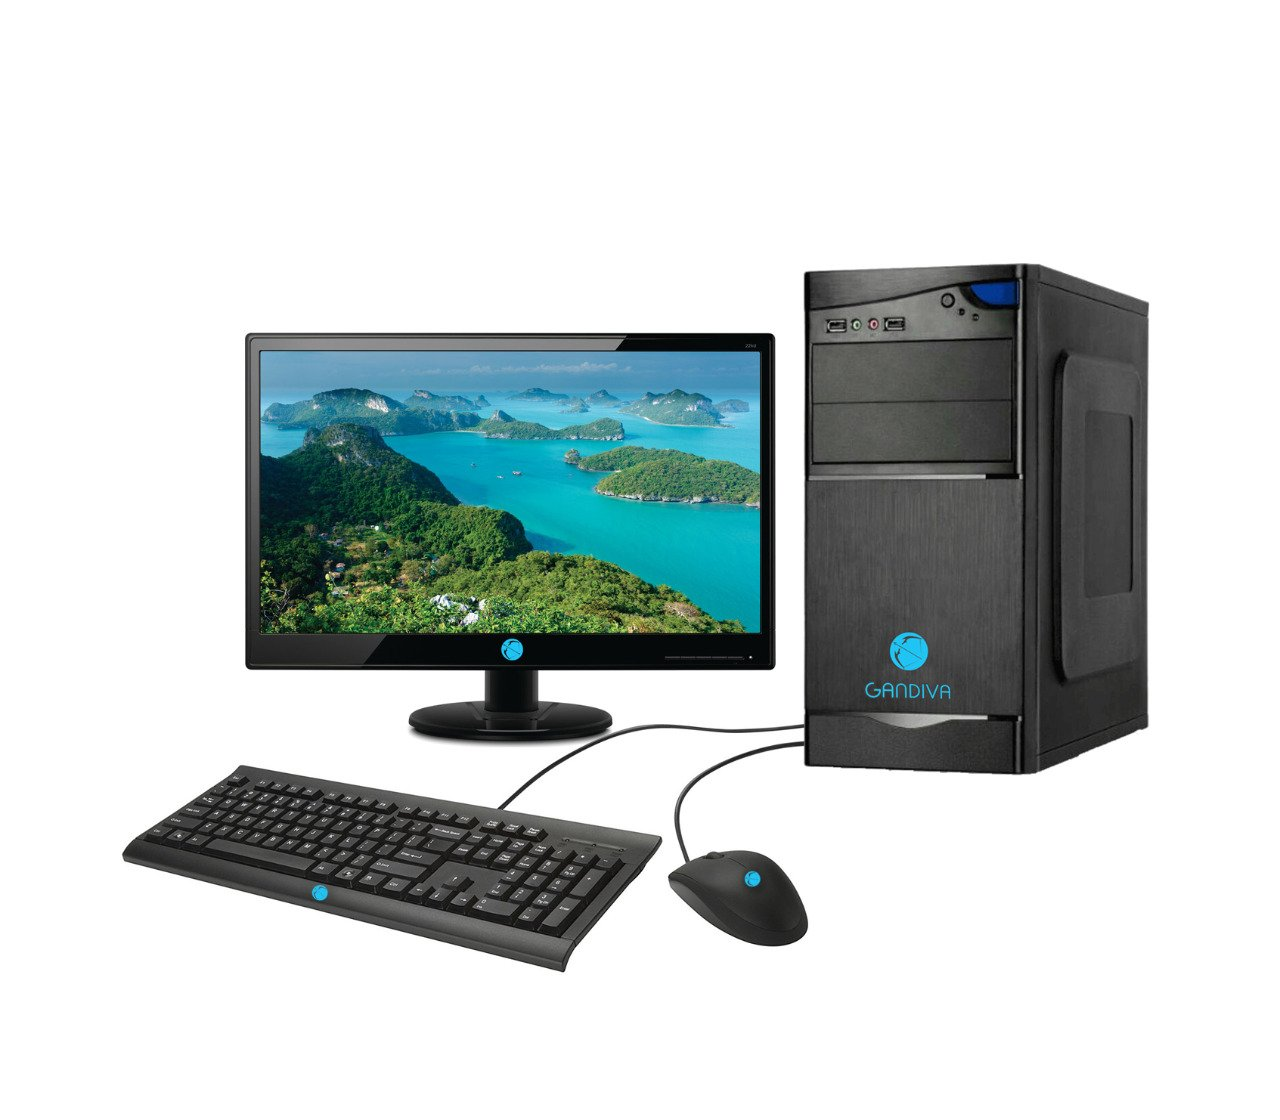 GANDIVA 18.5-inch All-in-One Desktop (Intel Core i5 1st